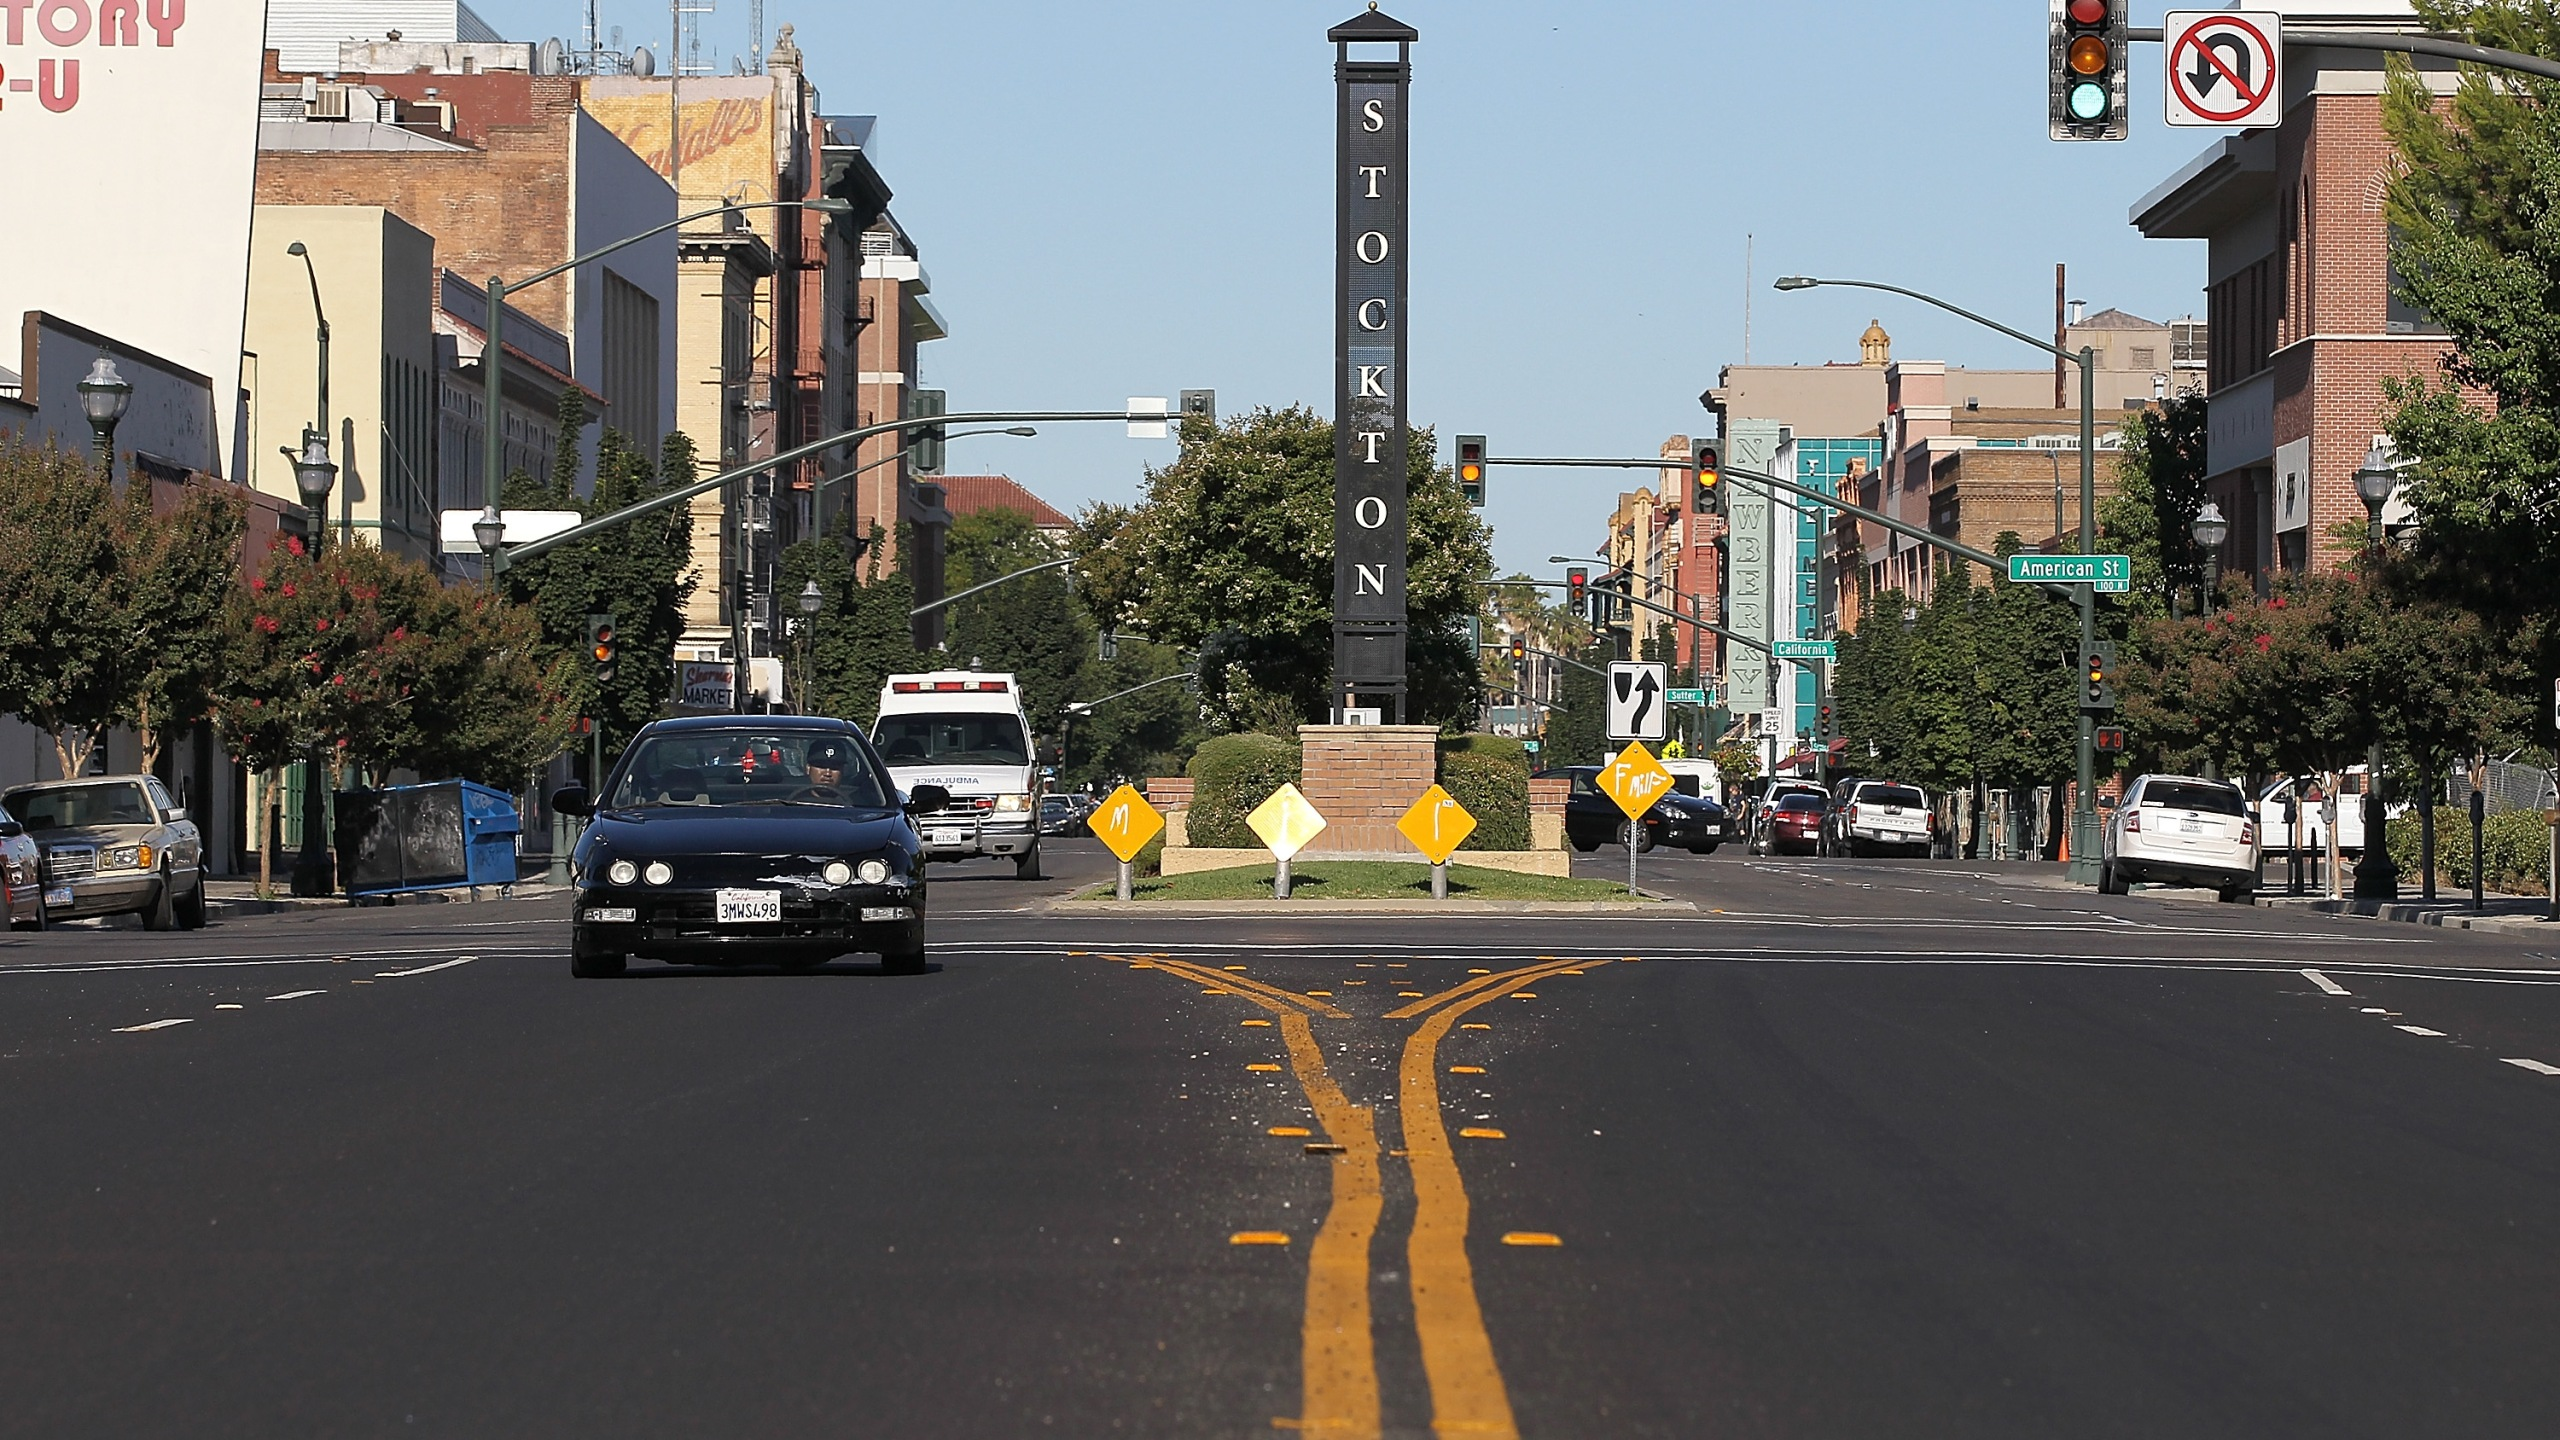 Cars drive by a sign on June 27, 2012, in Stockton, Calif. (Credit: Justin Sullivan/Getty Images)